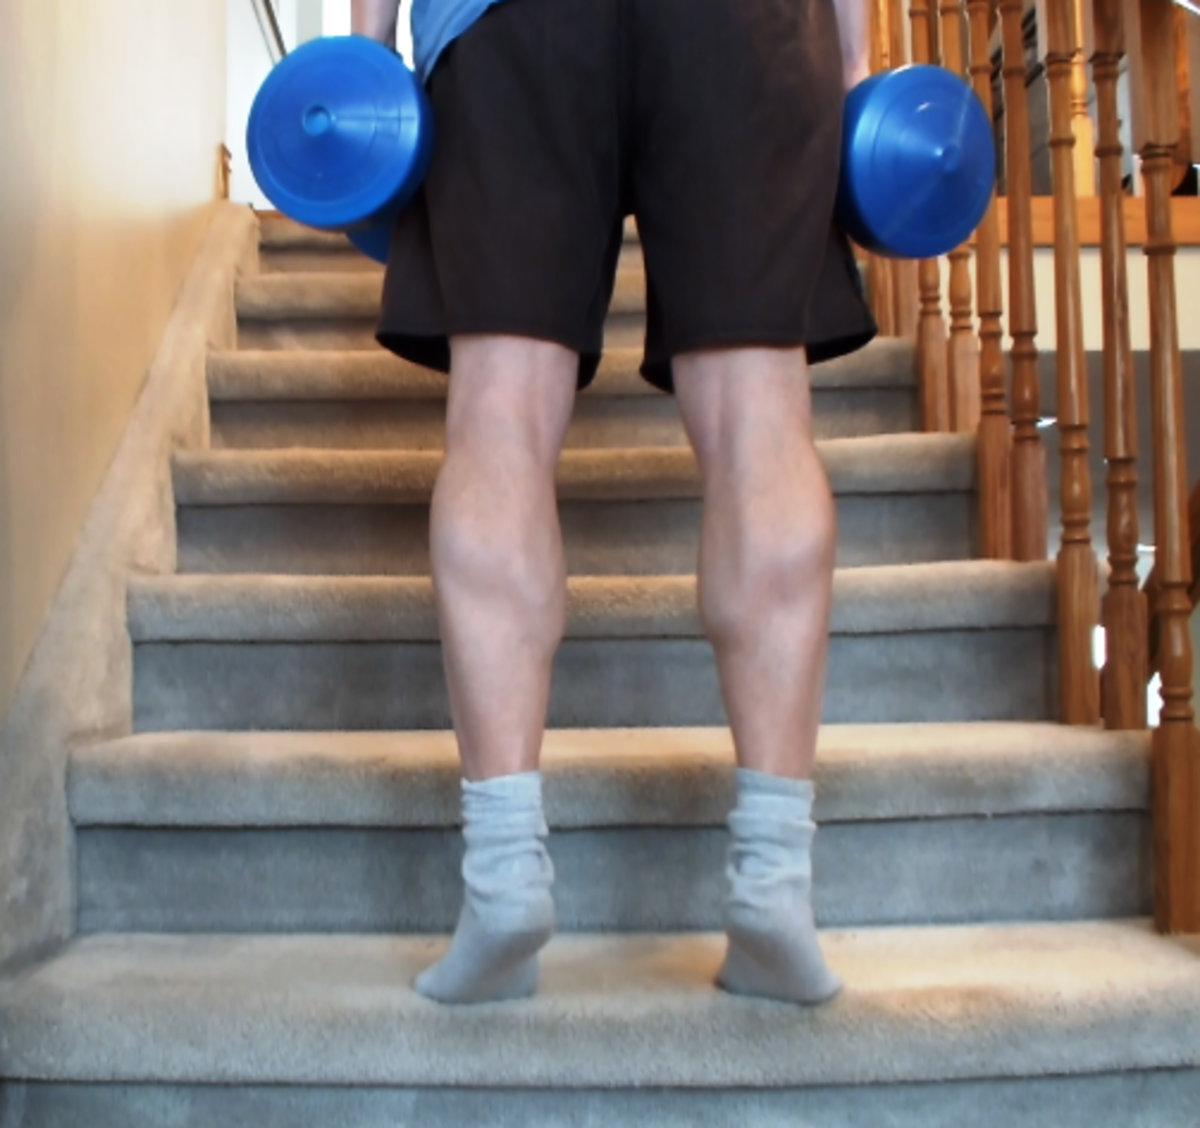 30-Day Challenge: 100 Calf Raises a Day for Bigger Calves